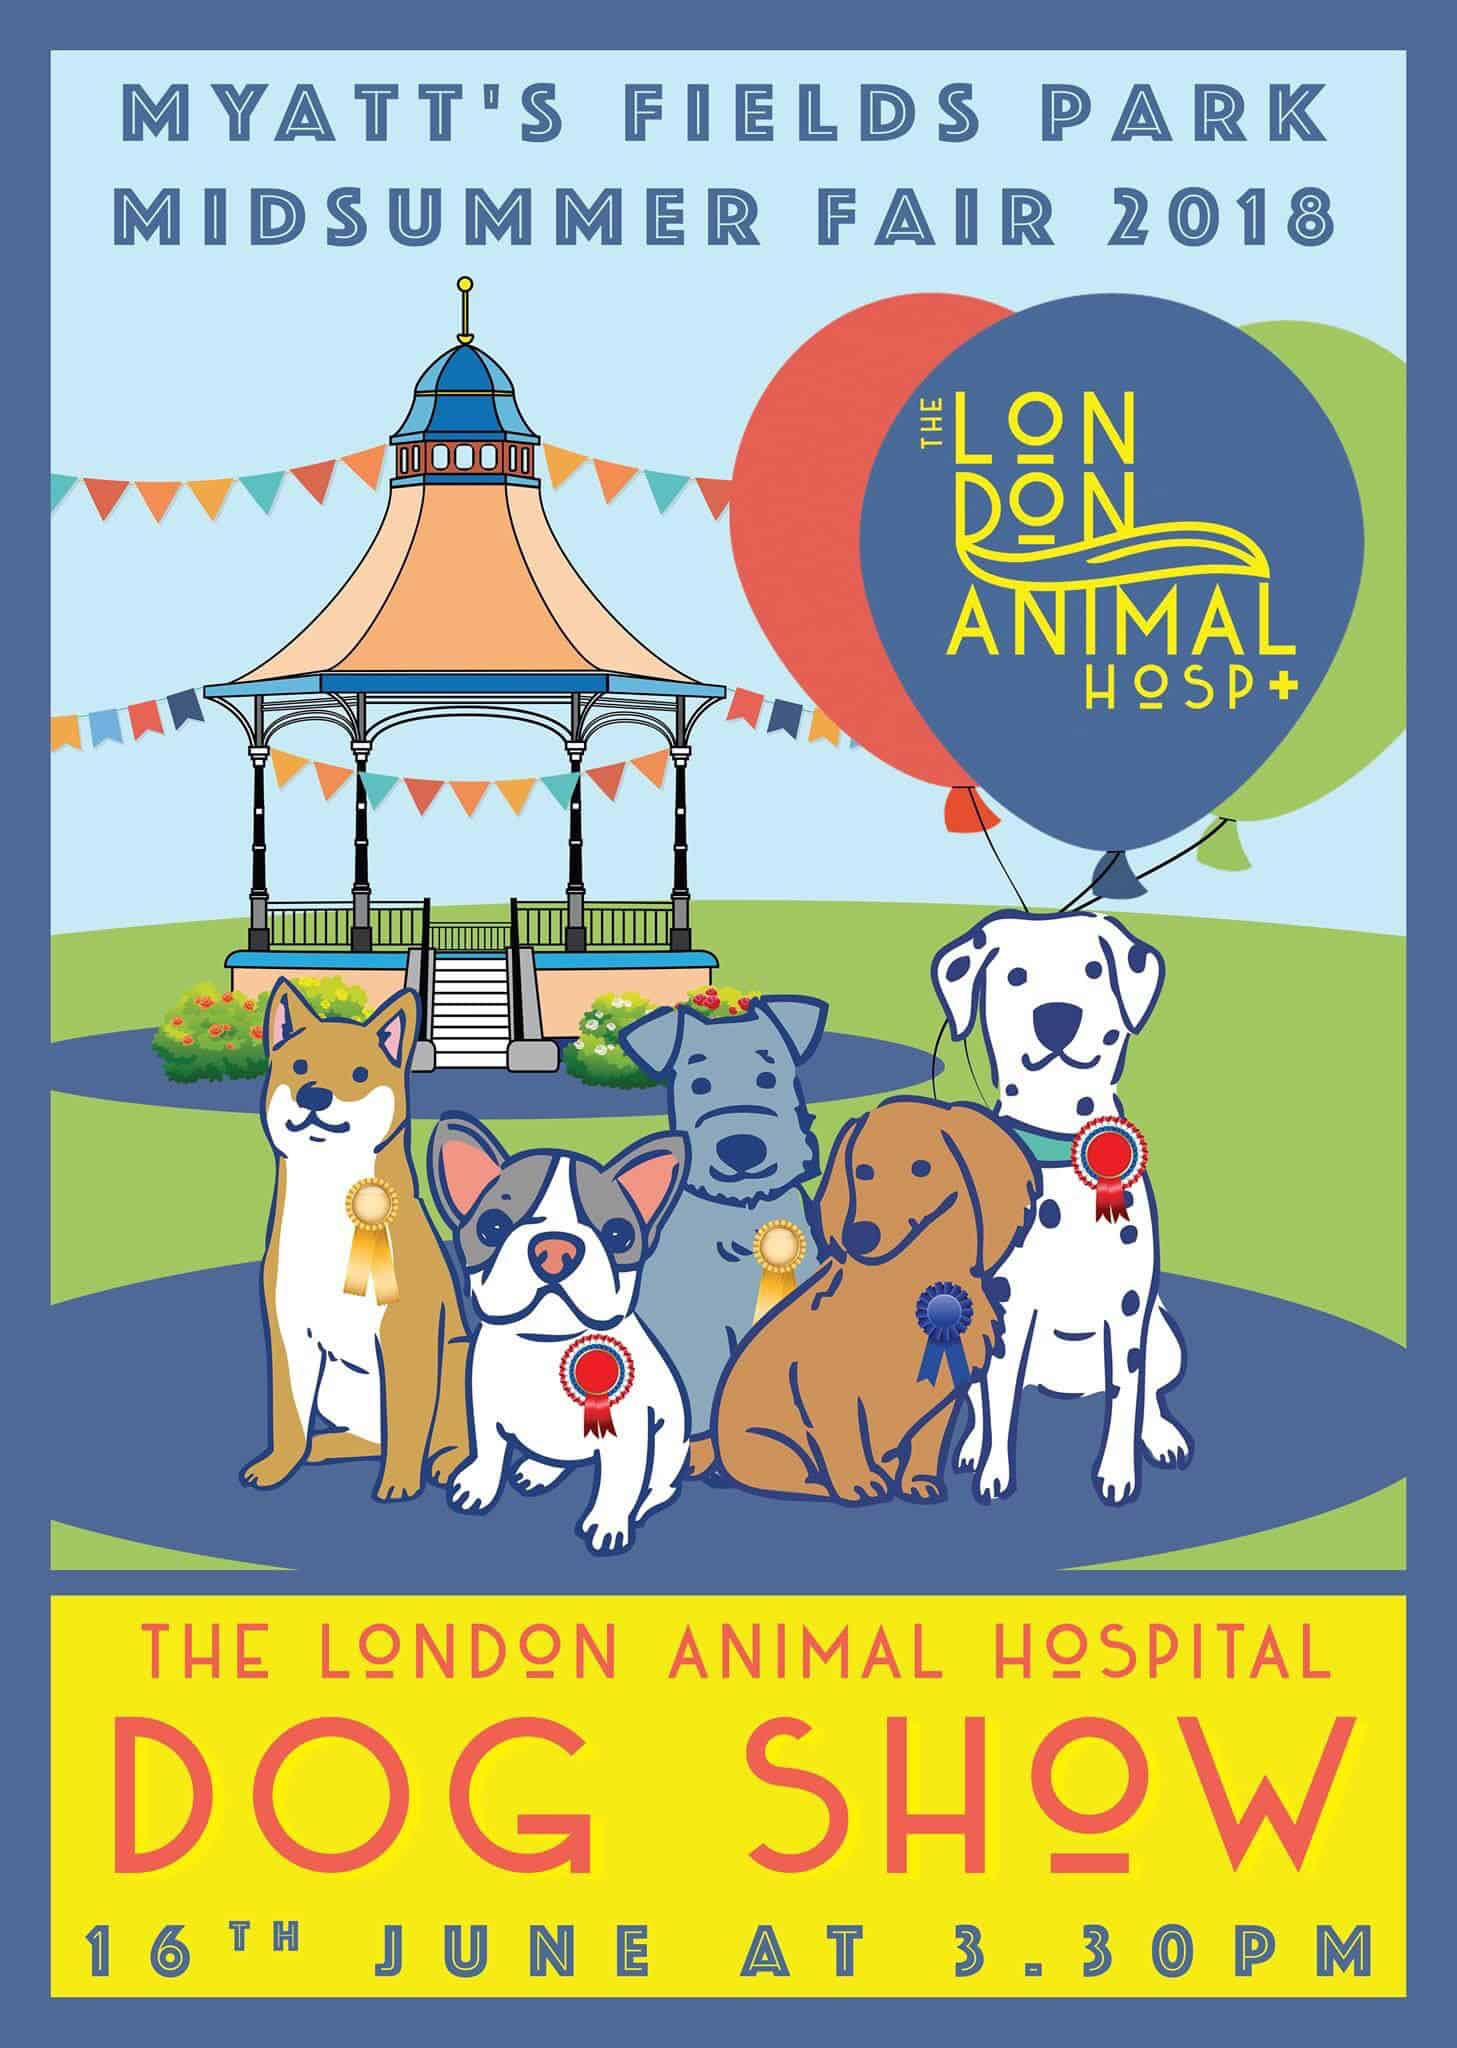 London Dog Events - Myatt's Field Park Midsummer Fair Dog Show 2018